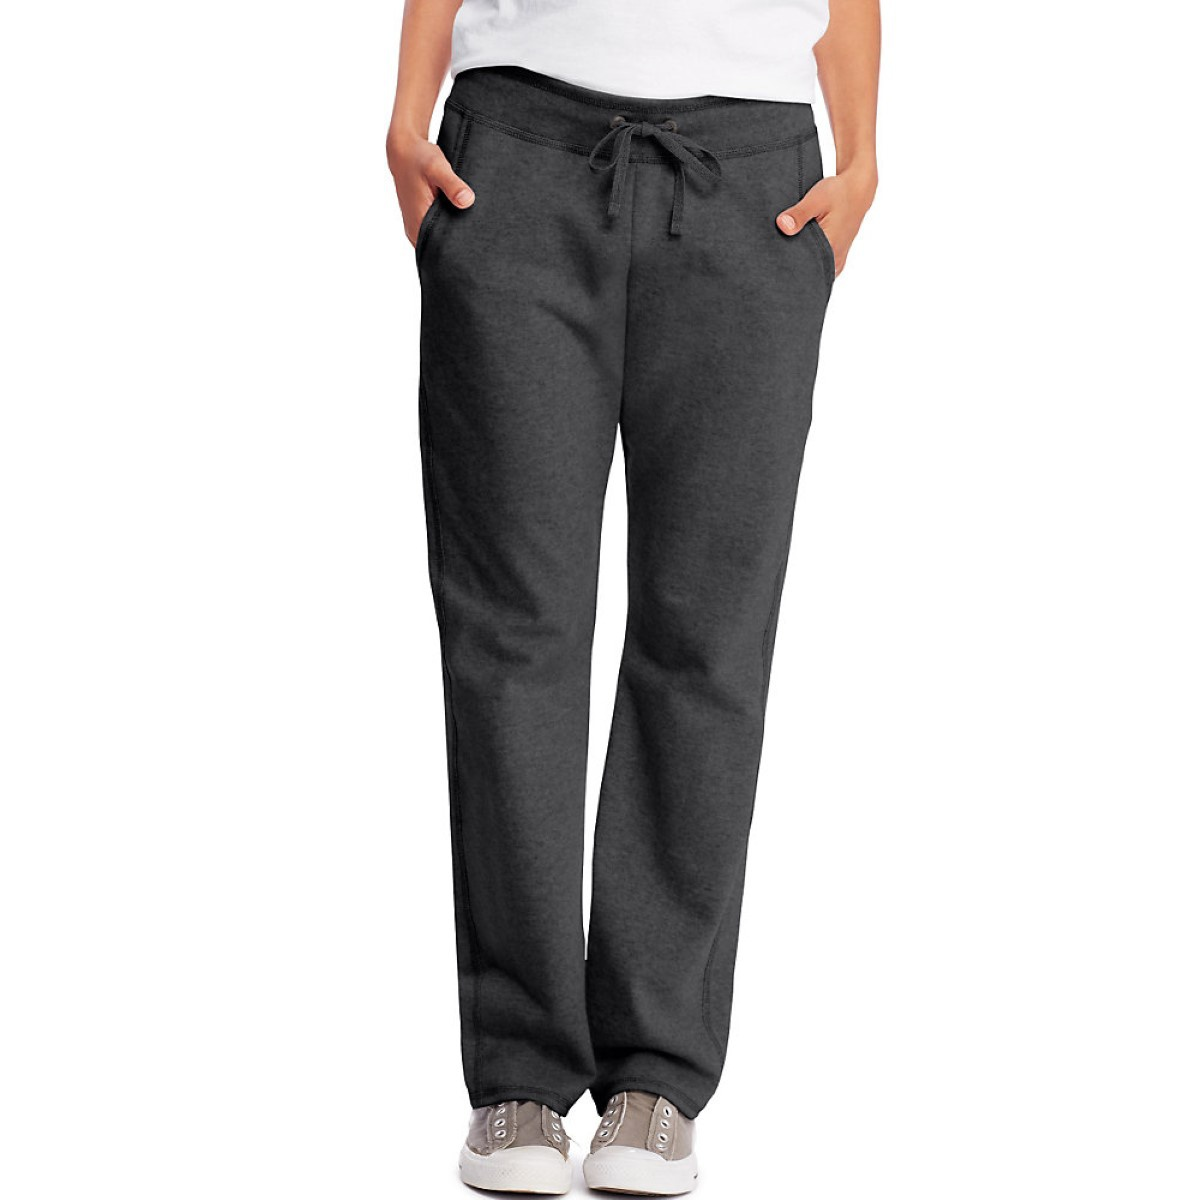 'Hanes O4677 Women's French Terry Pocket Pant'